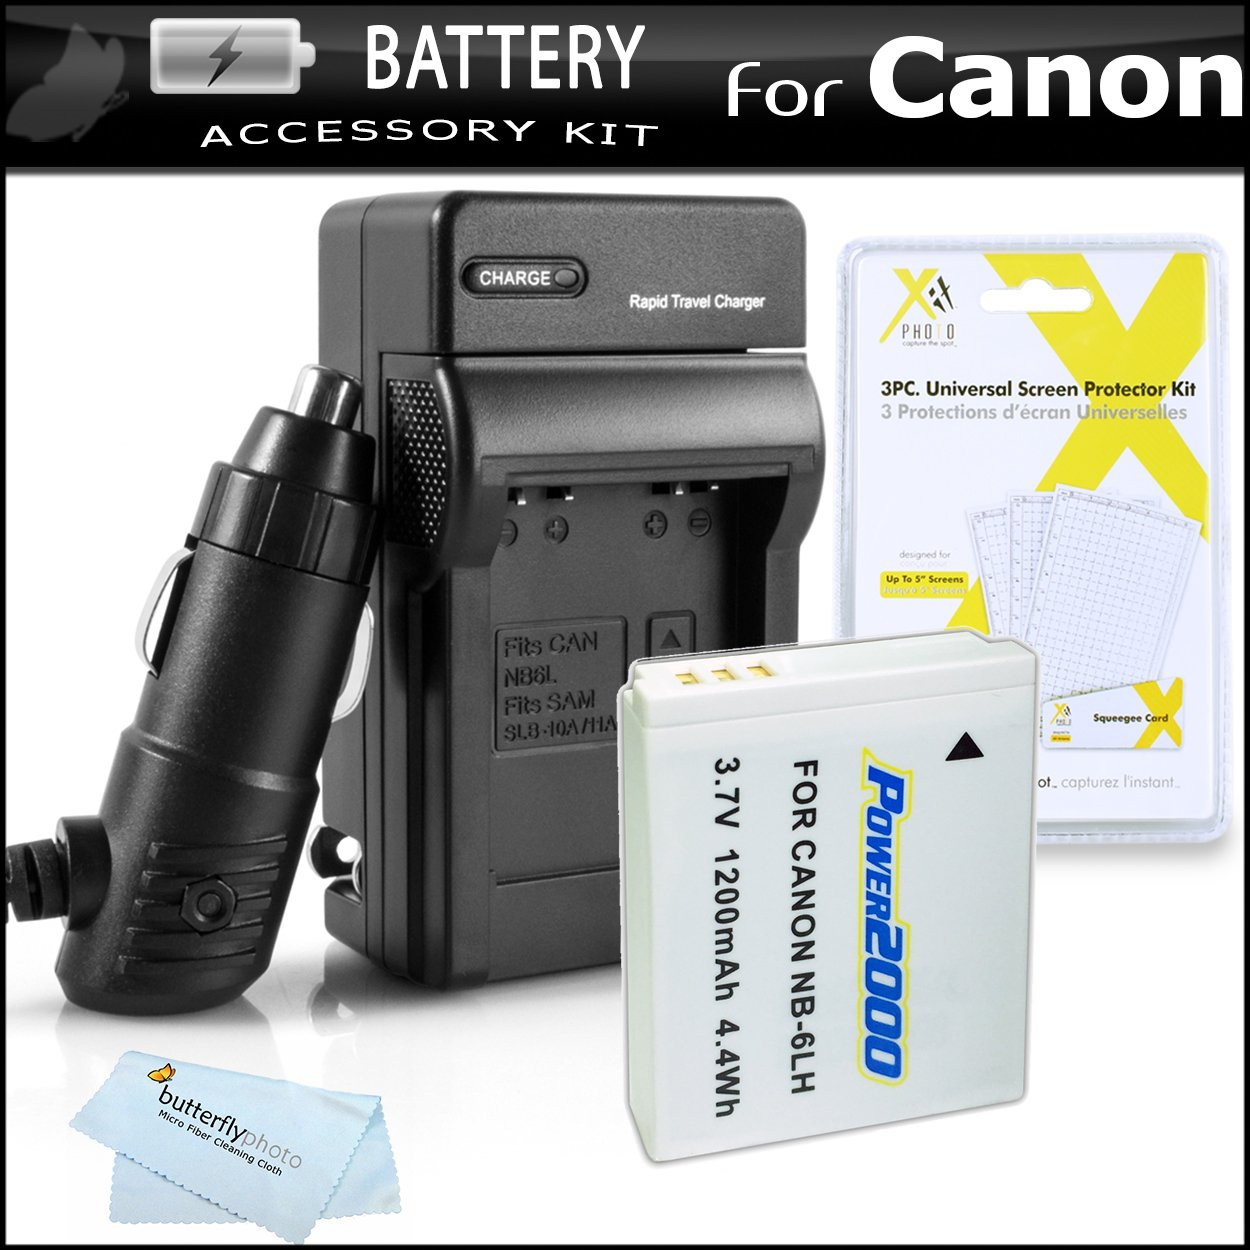 Replacement Battery for Canon NB-6LH NB-6L 1200MAH Each + 1 Hour Charger  for Canon Powershot SX280 HS, SX500 is, D10, D20, D30, SX600 HS, SX610 HS,